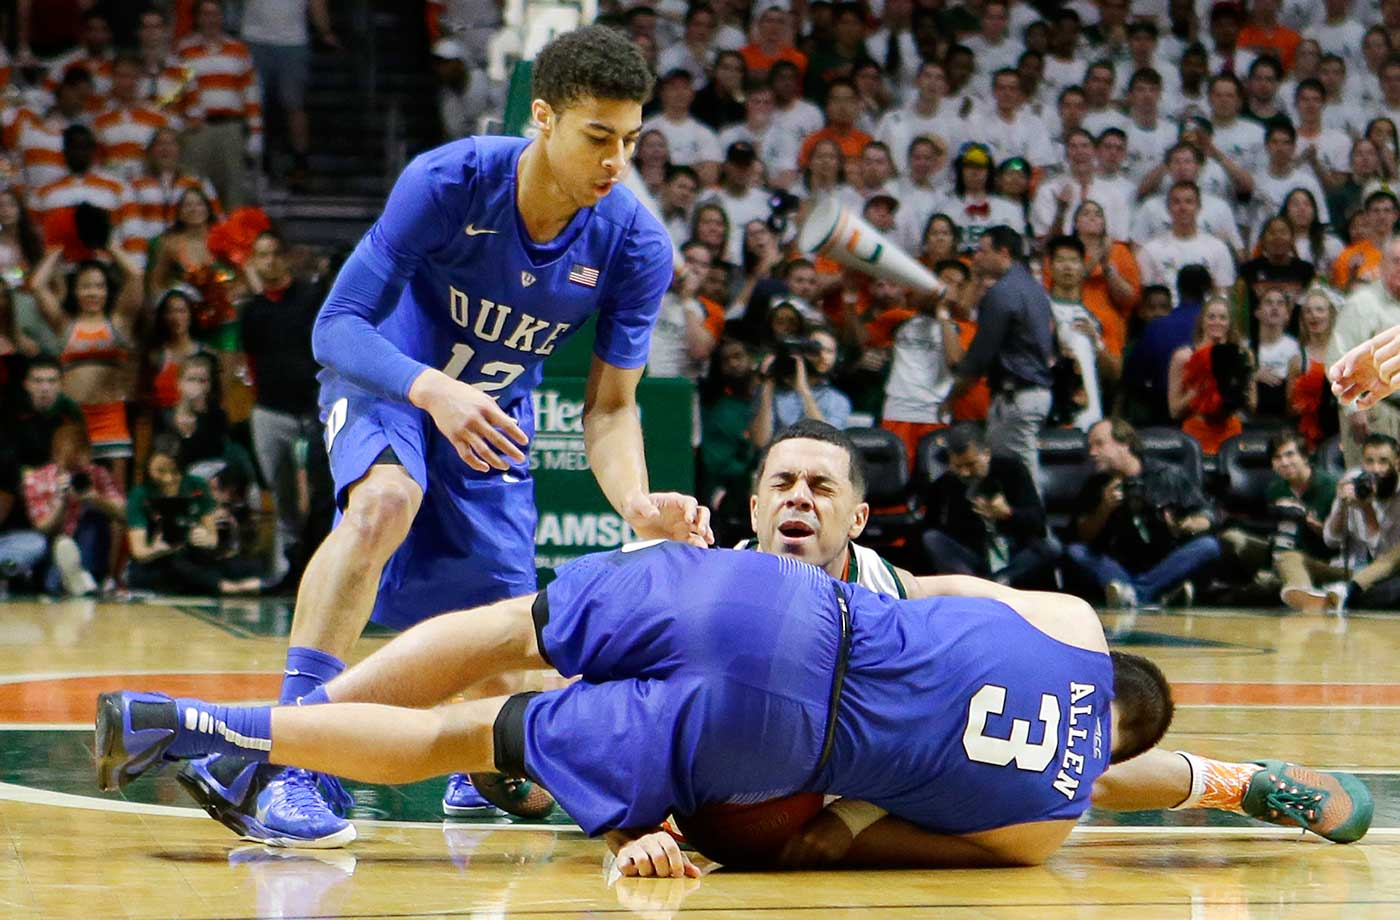 Miami guard Angel Rodriguez grimaces as Duke guard Grayson Allen lands on Rodriguez' arm as they battle for a lose ball in Coral Gables, Fla. Miami won 80-69.